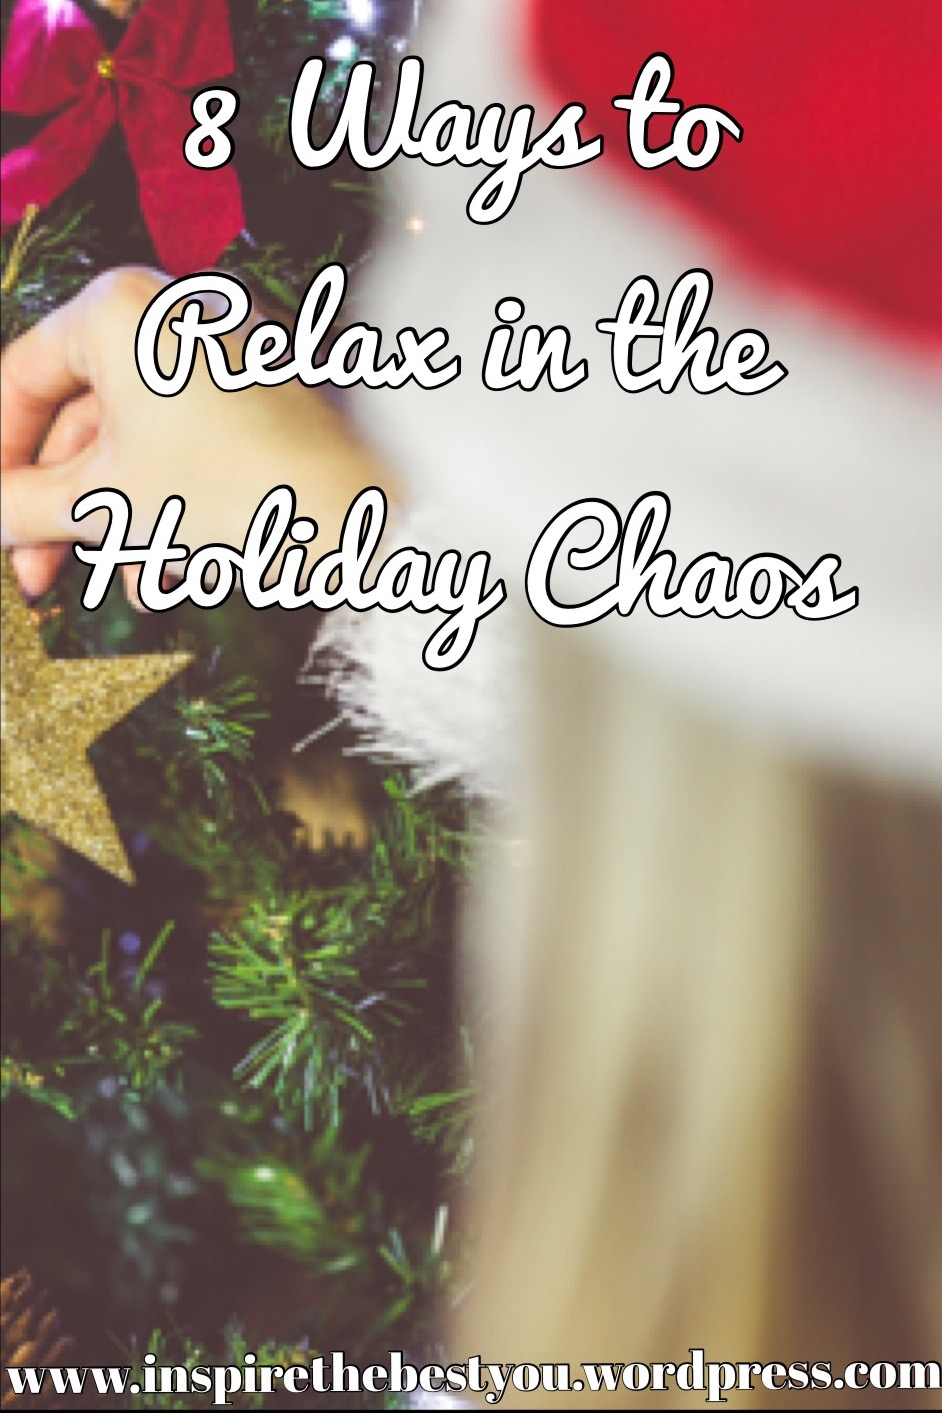 8 Ways to Relax in the HolidayChaos